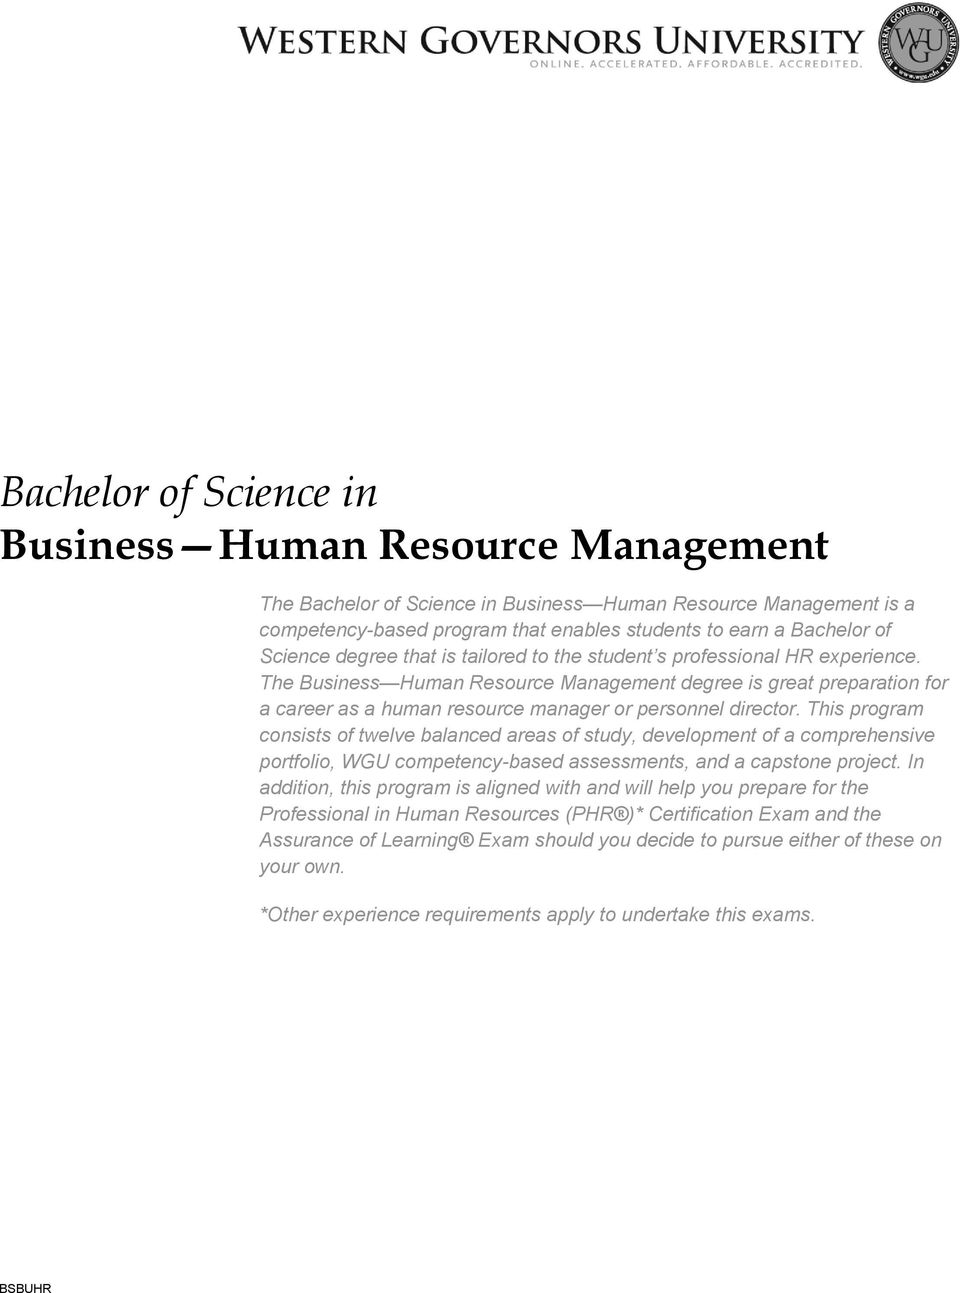 The Business Human Resource Management degree is great preparation for a career as a human resource manager or personnel director.